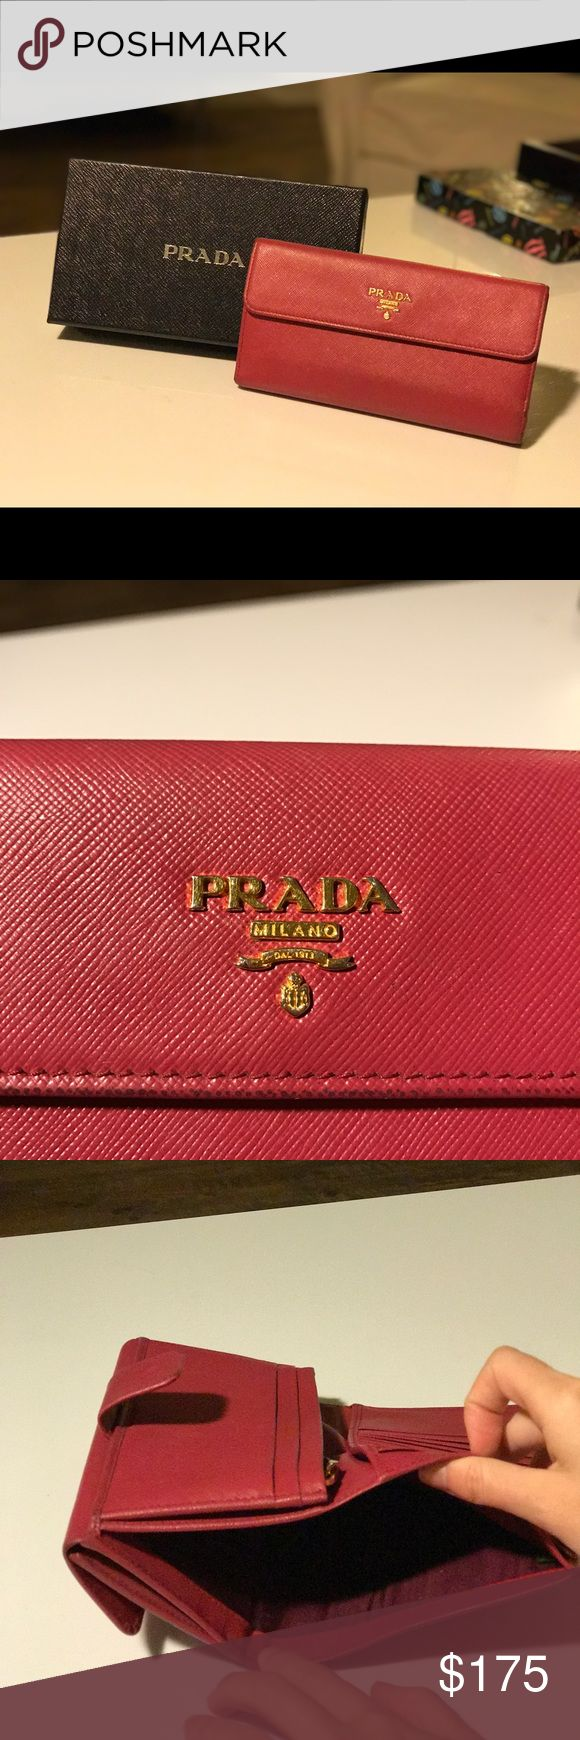 Prada Leather Long Flap Wallet Mildly used original Prada Cipria Saffiano Leather Long Flap Wallet selling for 50% off!! Original value $350, price tag and authenticity certificate card included. Prada Bags Wallets